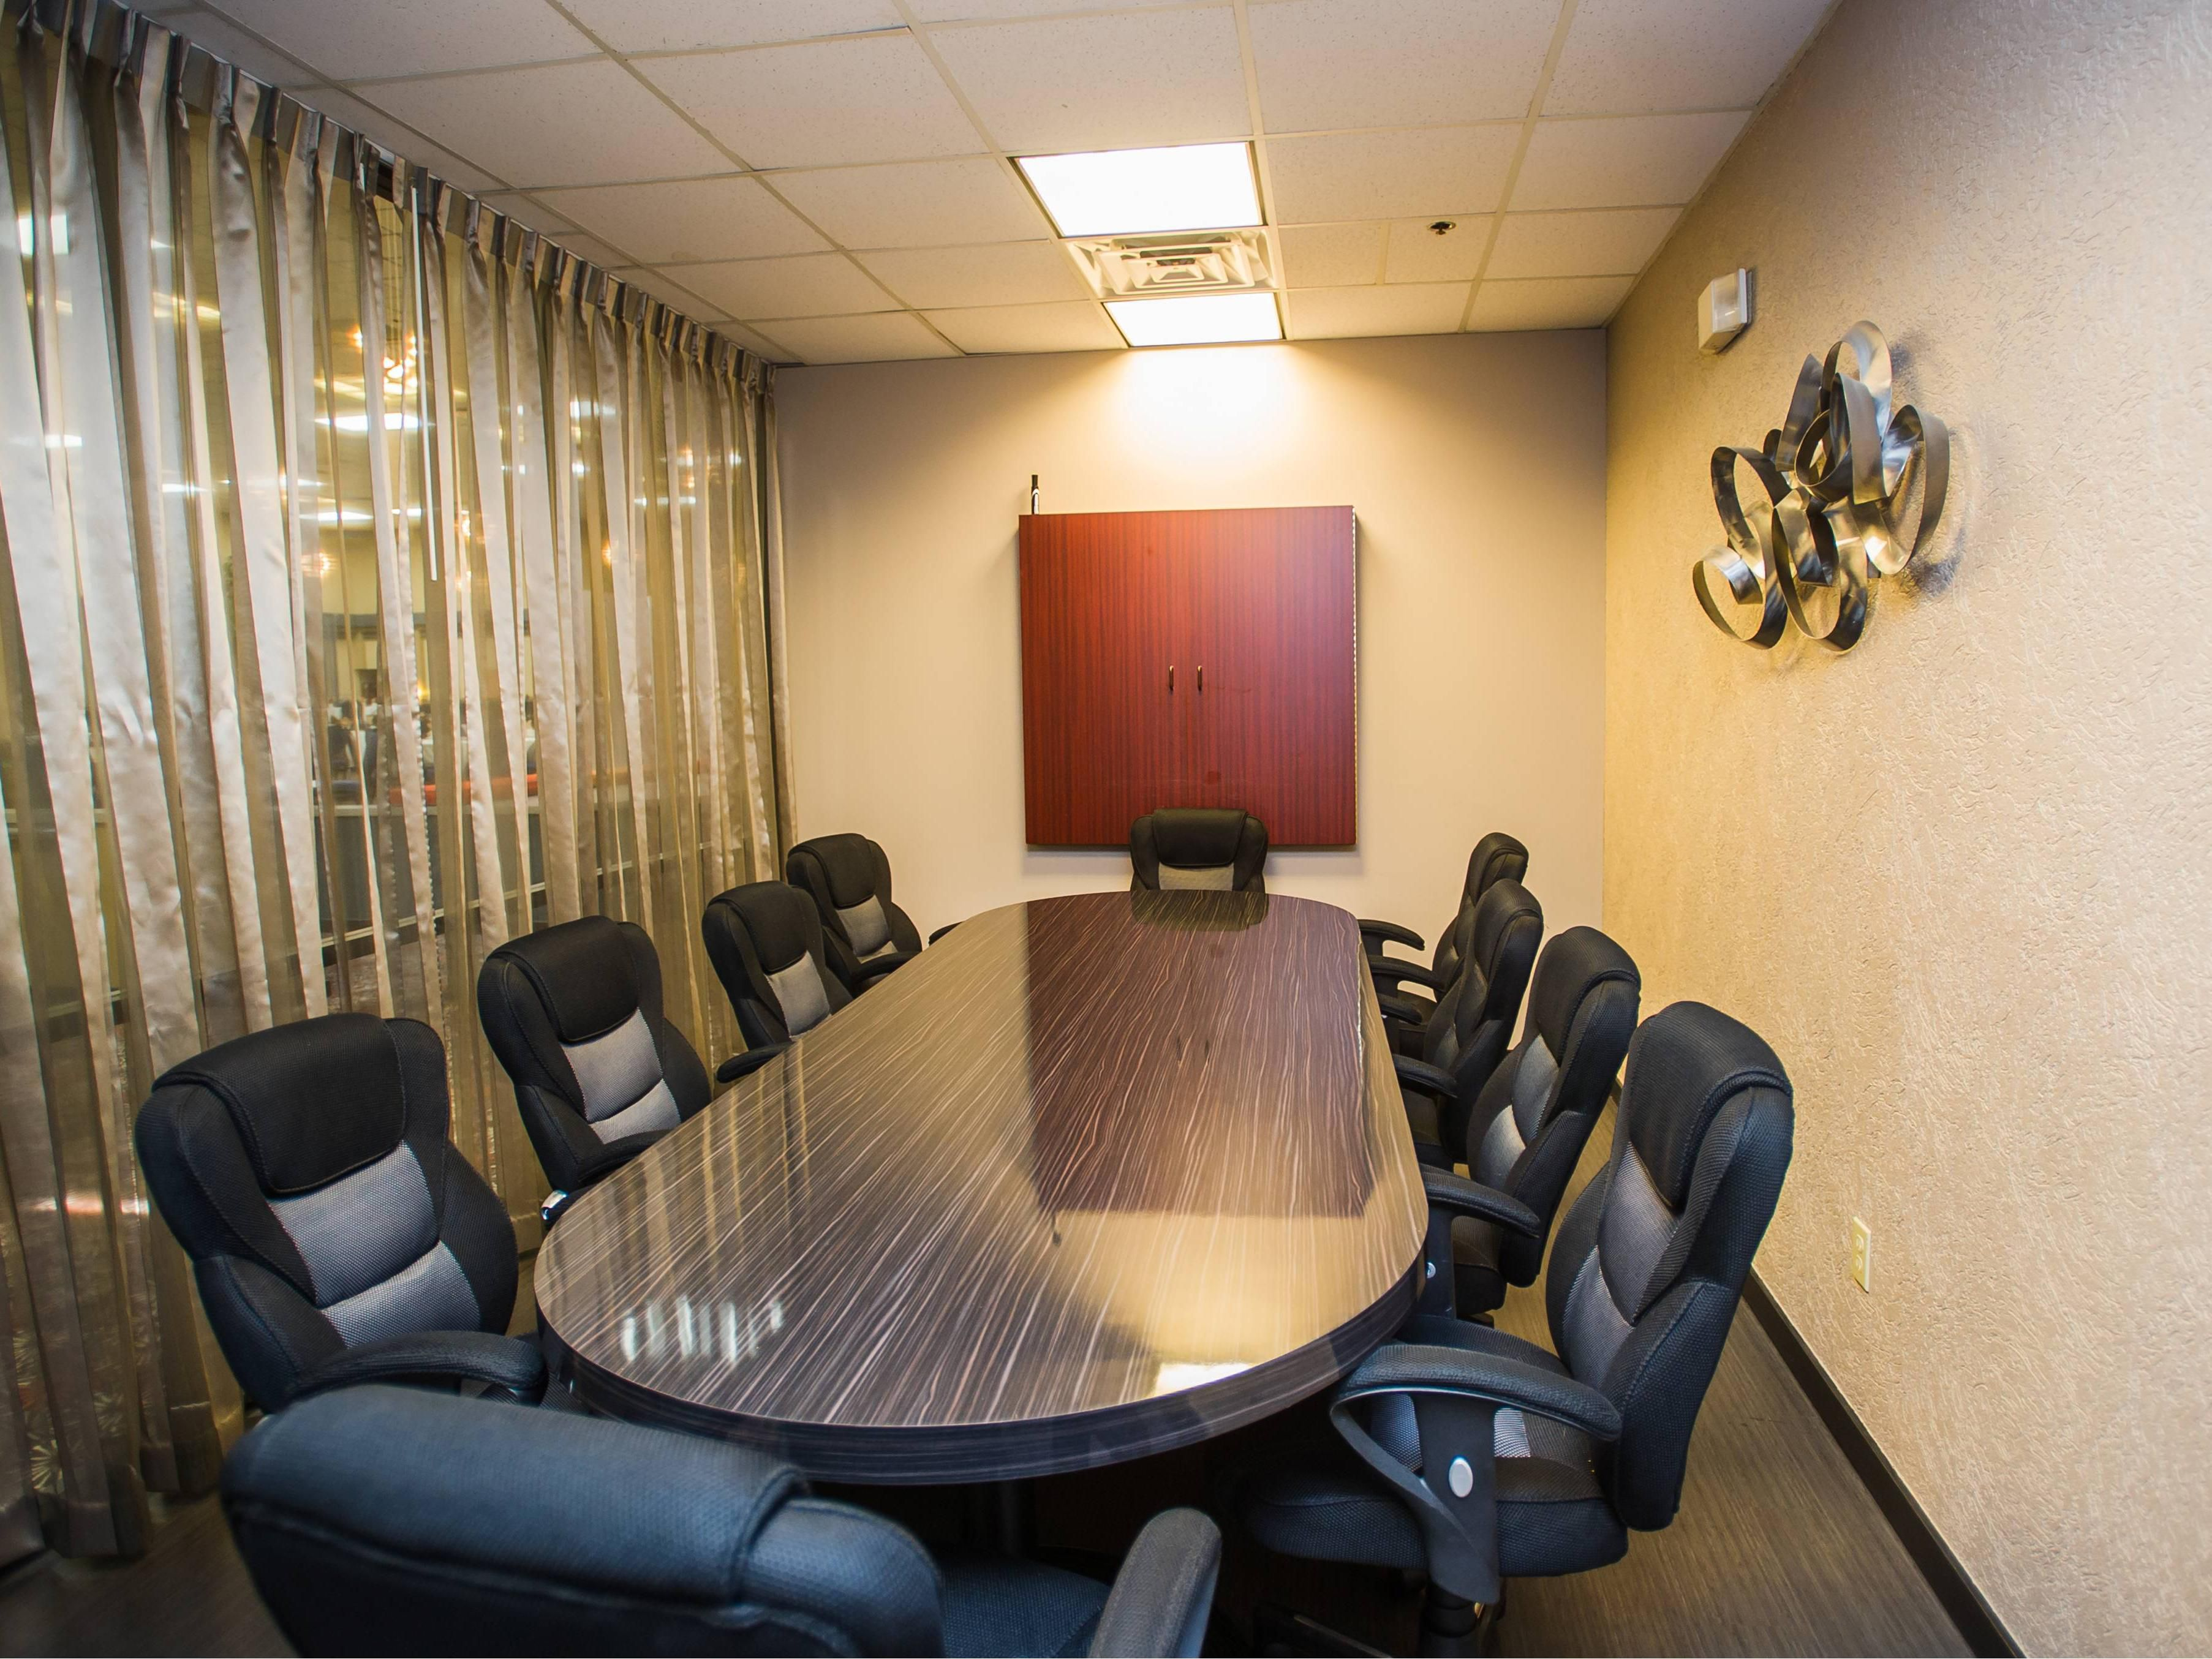 Executive Boardroom seating up to 10 people